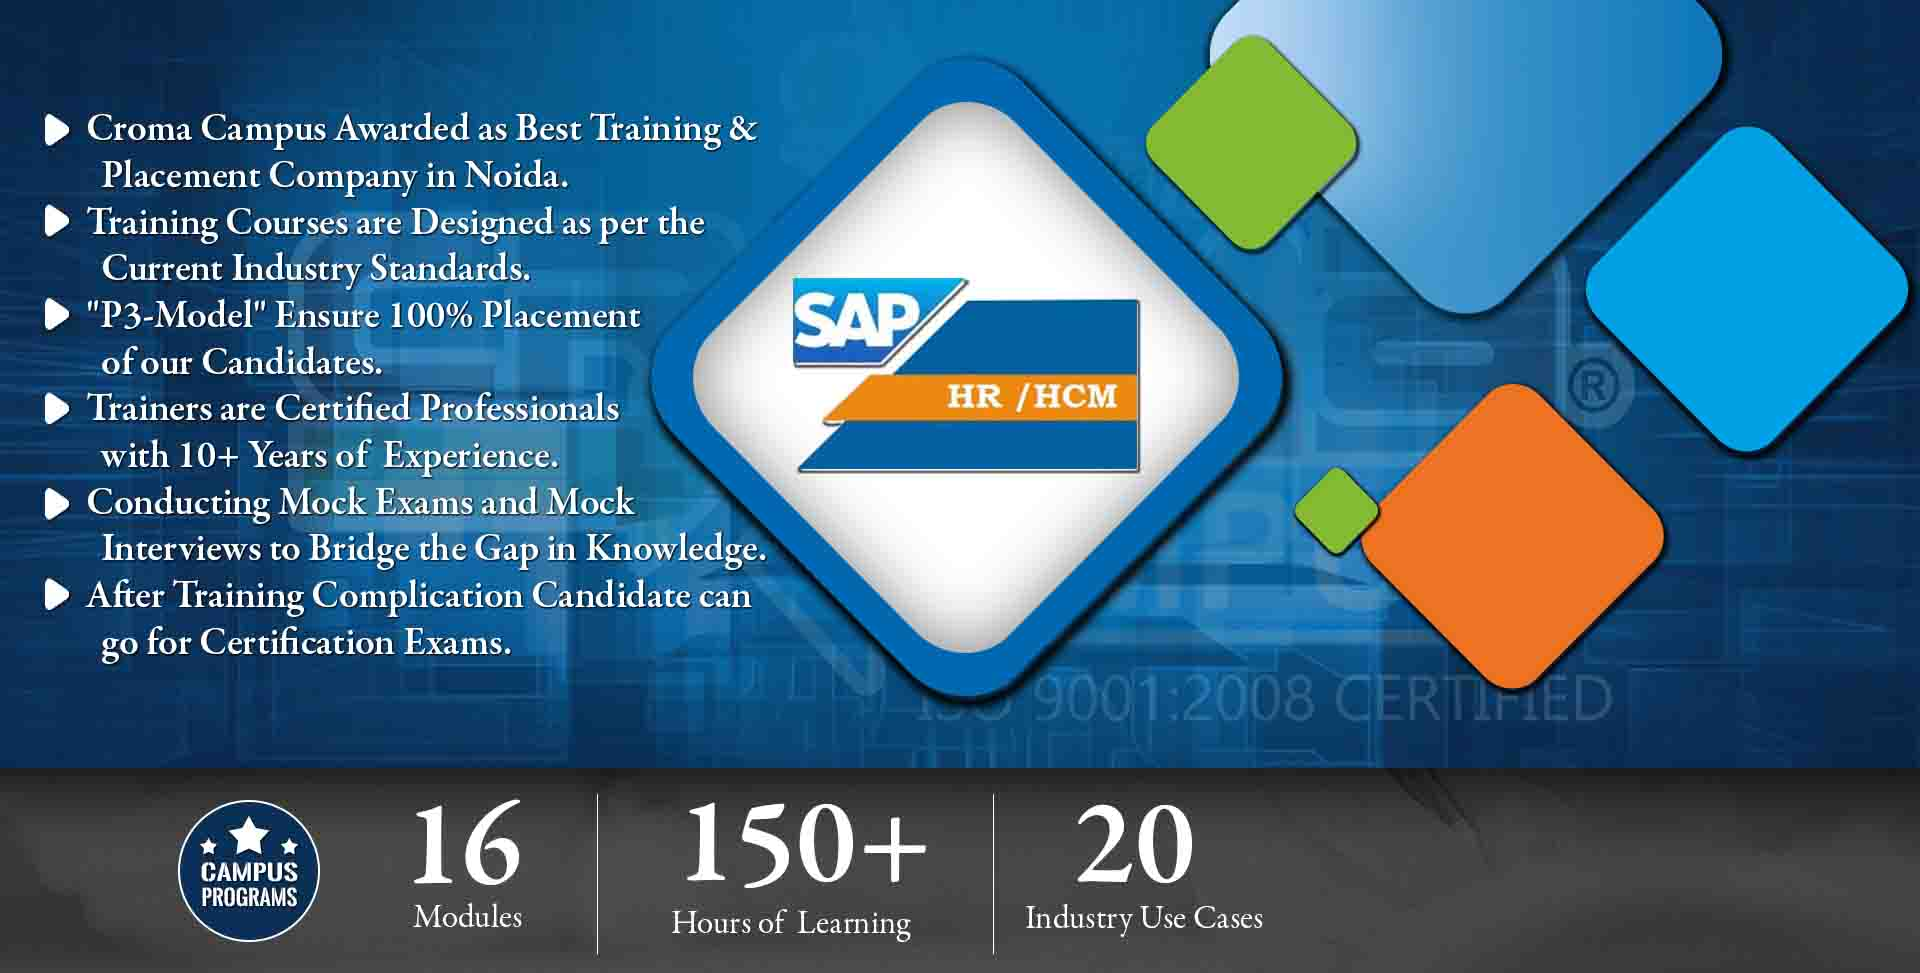 SAP HR (HCM)  Training in Noida- Croma Campus